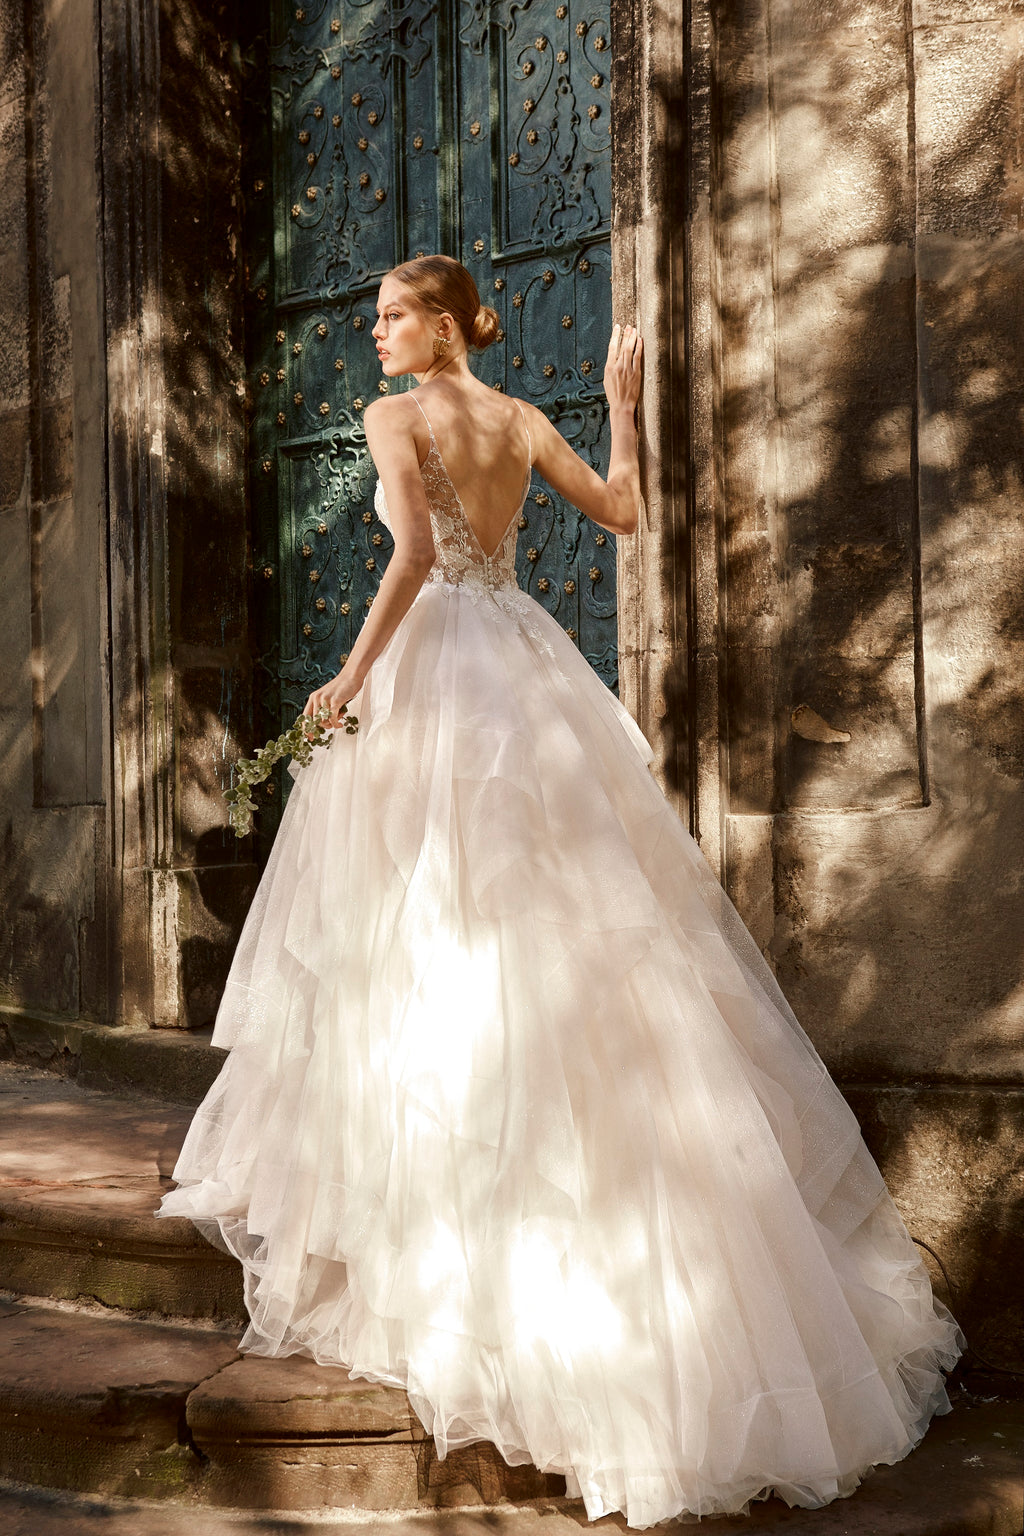 Sonia, Multi-Layer Organza Ruffled Skirt A-Line Open Back Wedding Dress with Sweetheart Floral Lace Bodice and Spaghetti Straps